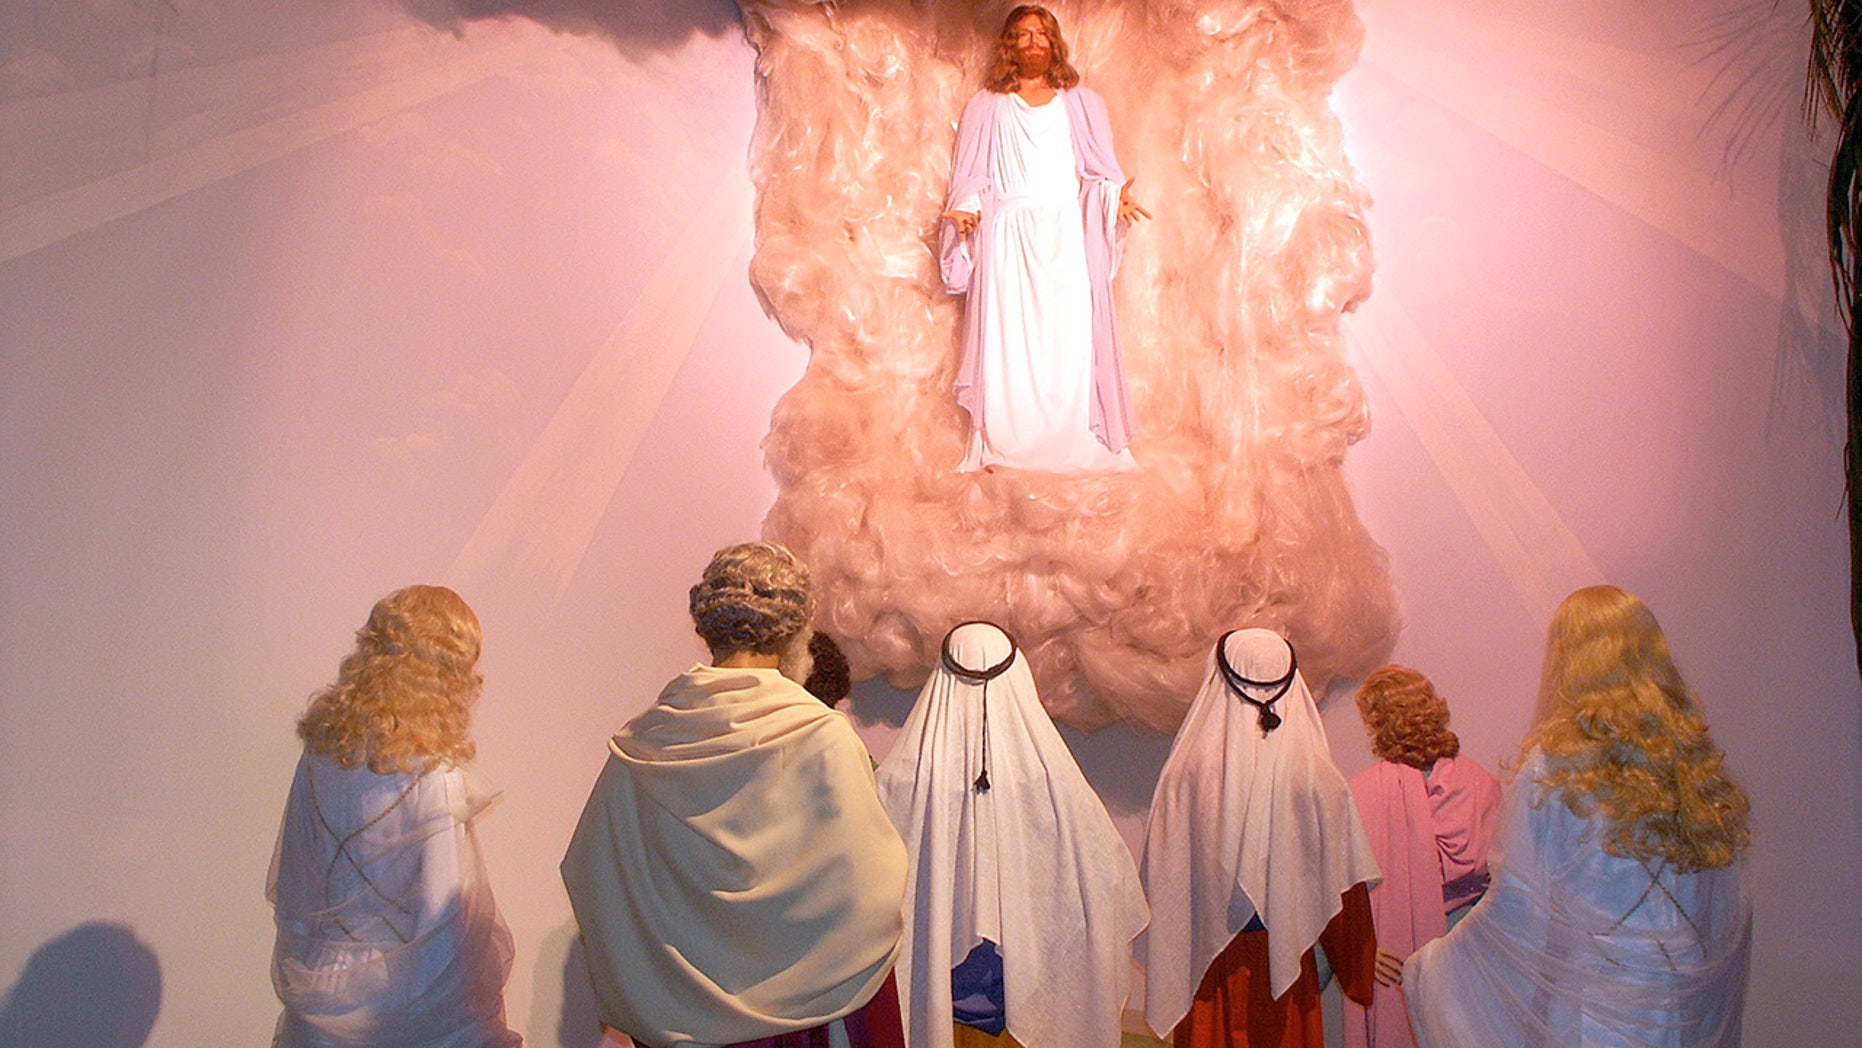 The ascension of Jesus Christ is portrayed at the BibleWalk wax museum in Mansfield, Ohio.